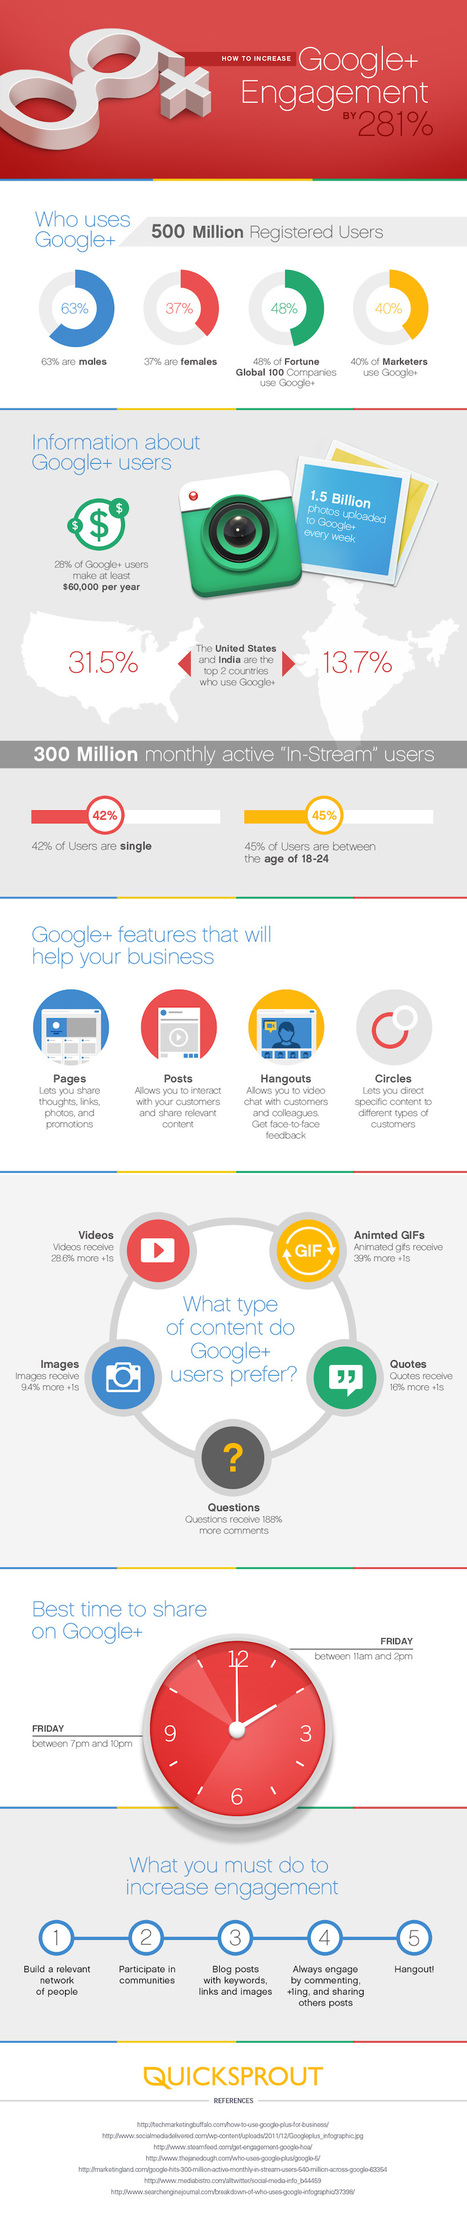 How to Increase Your Google+ Engagement by 281% | Educational Data - Visualizations - Infographics | Scoop.it